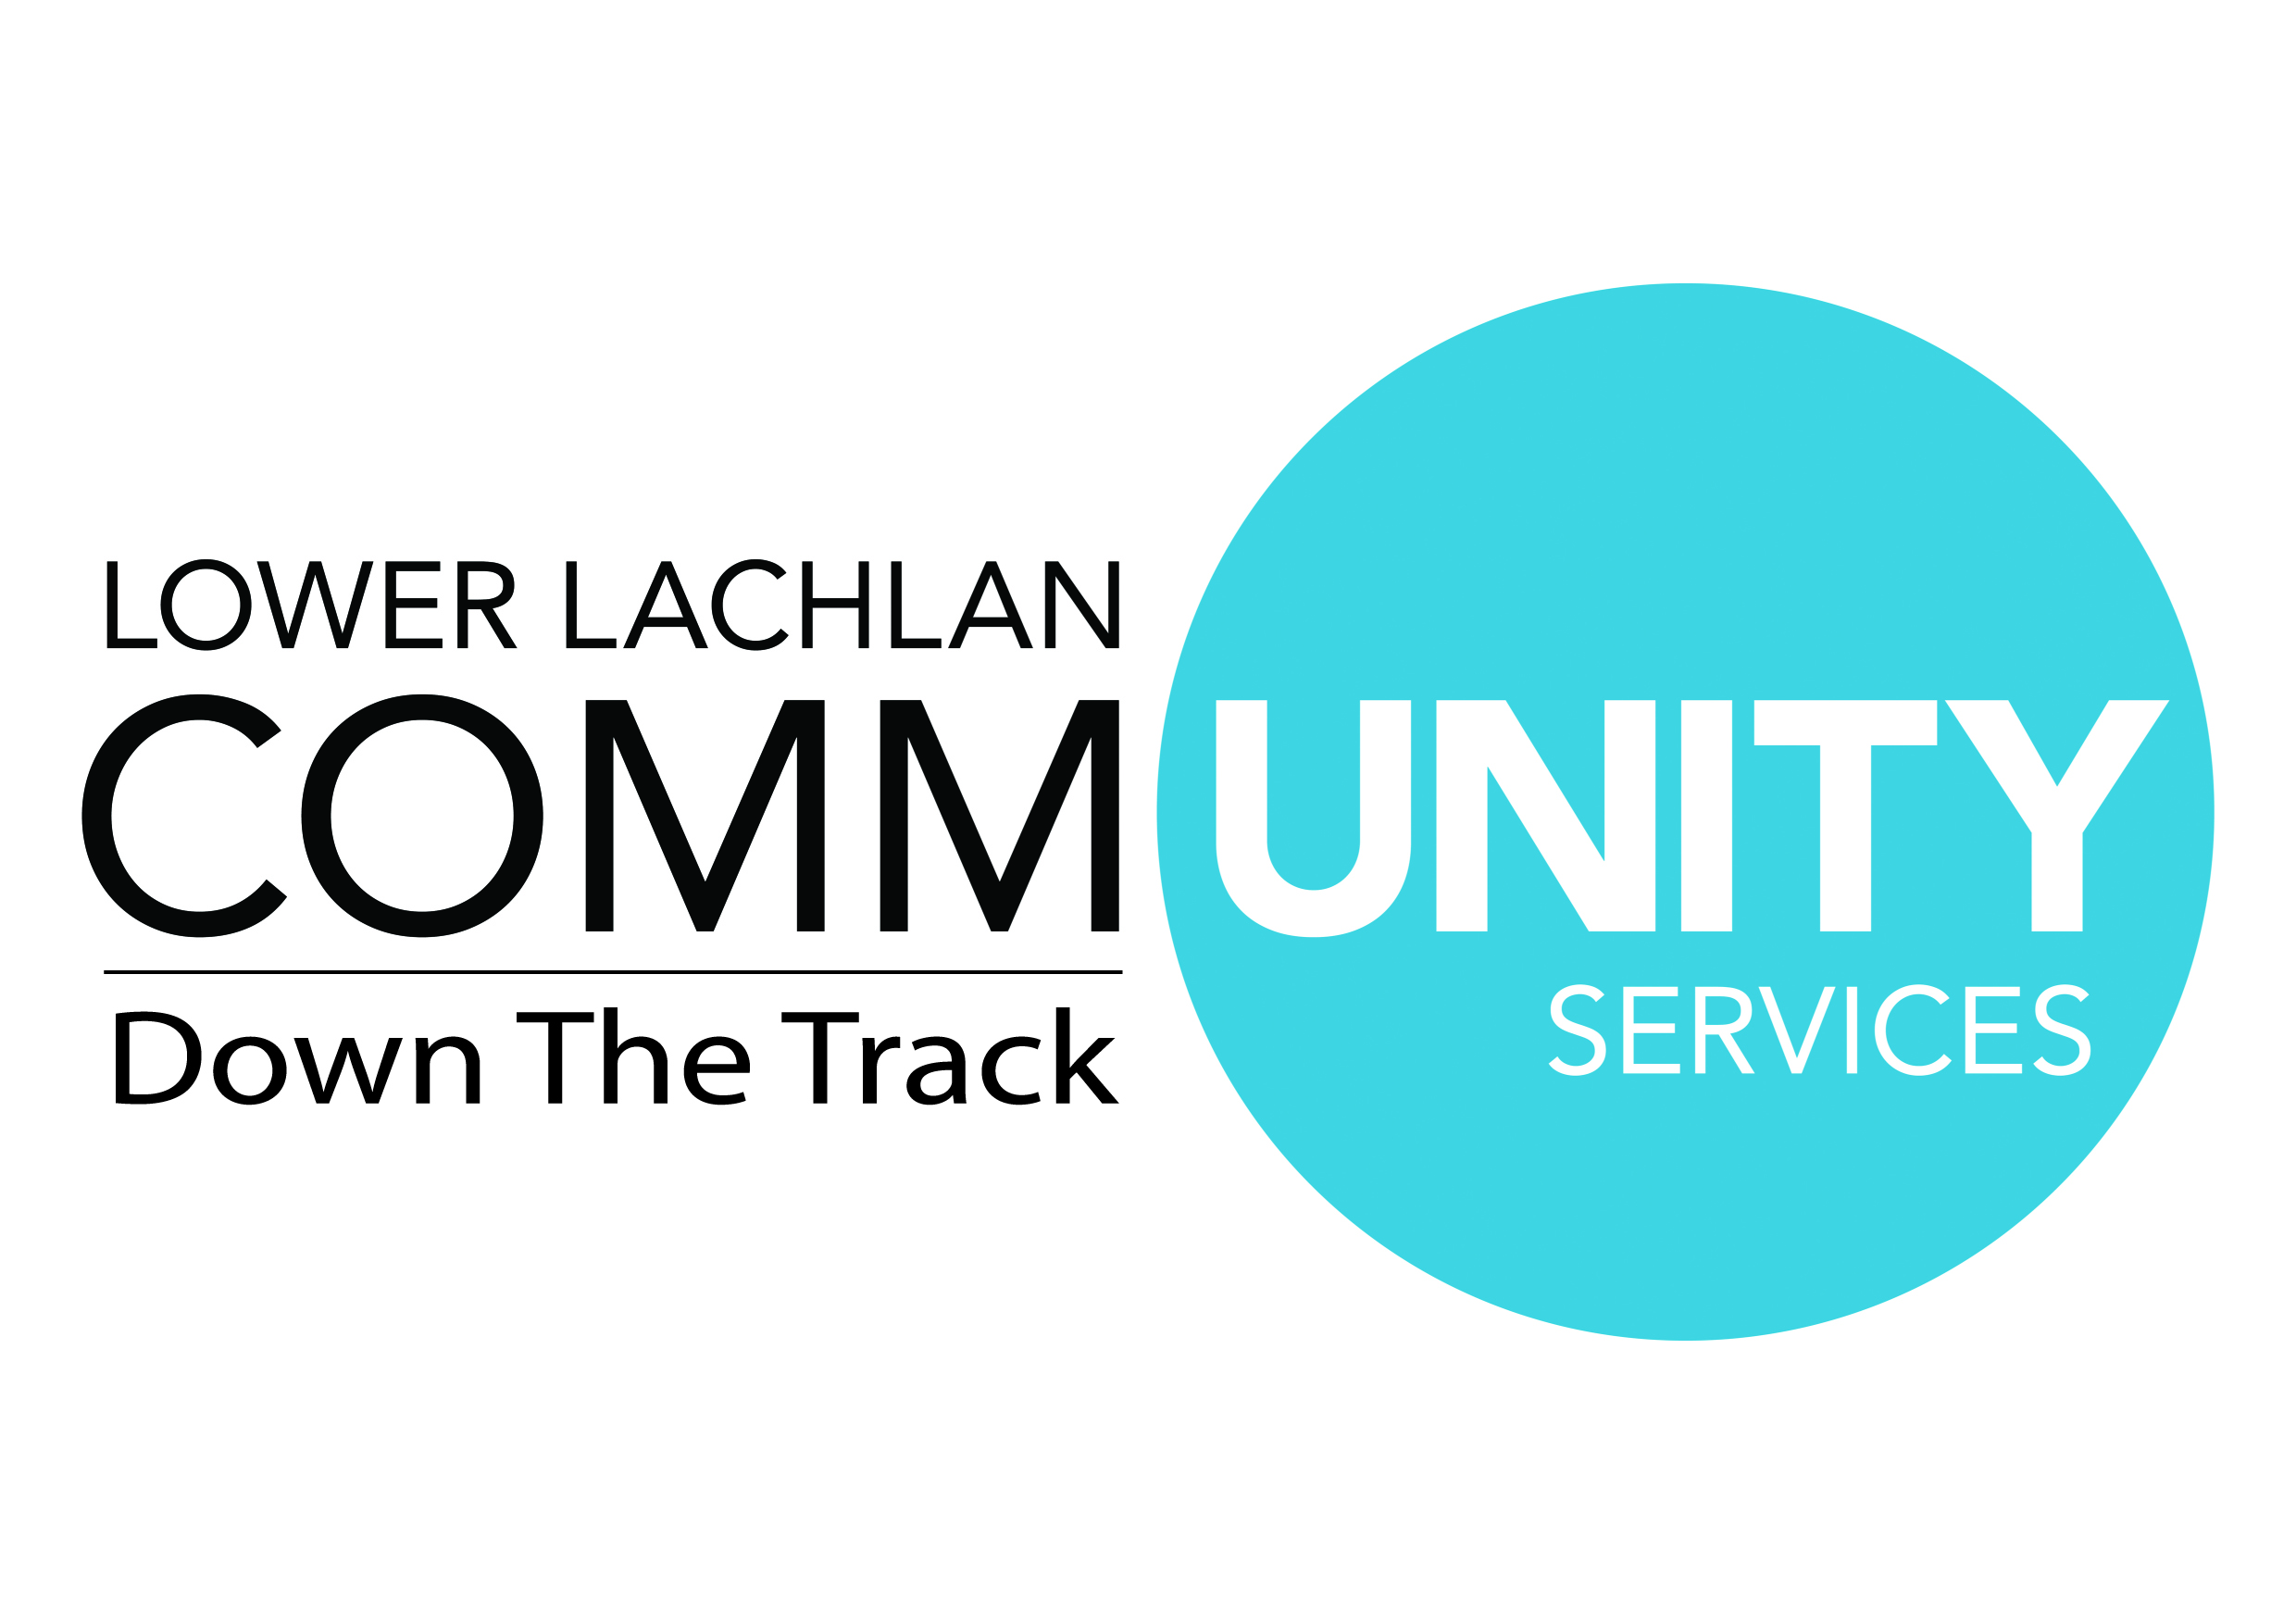 Down the Track exists to support disengaged and at-risk youth, promote engagement and self-esteem and reduce youth crime. -